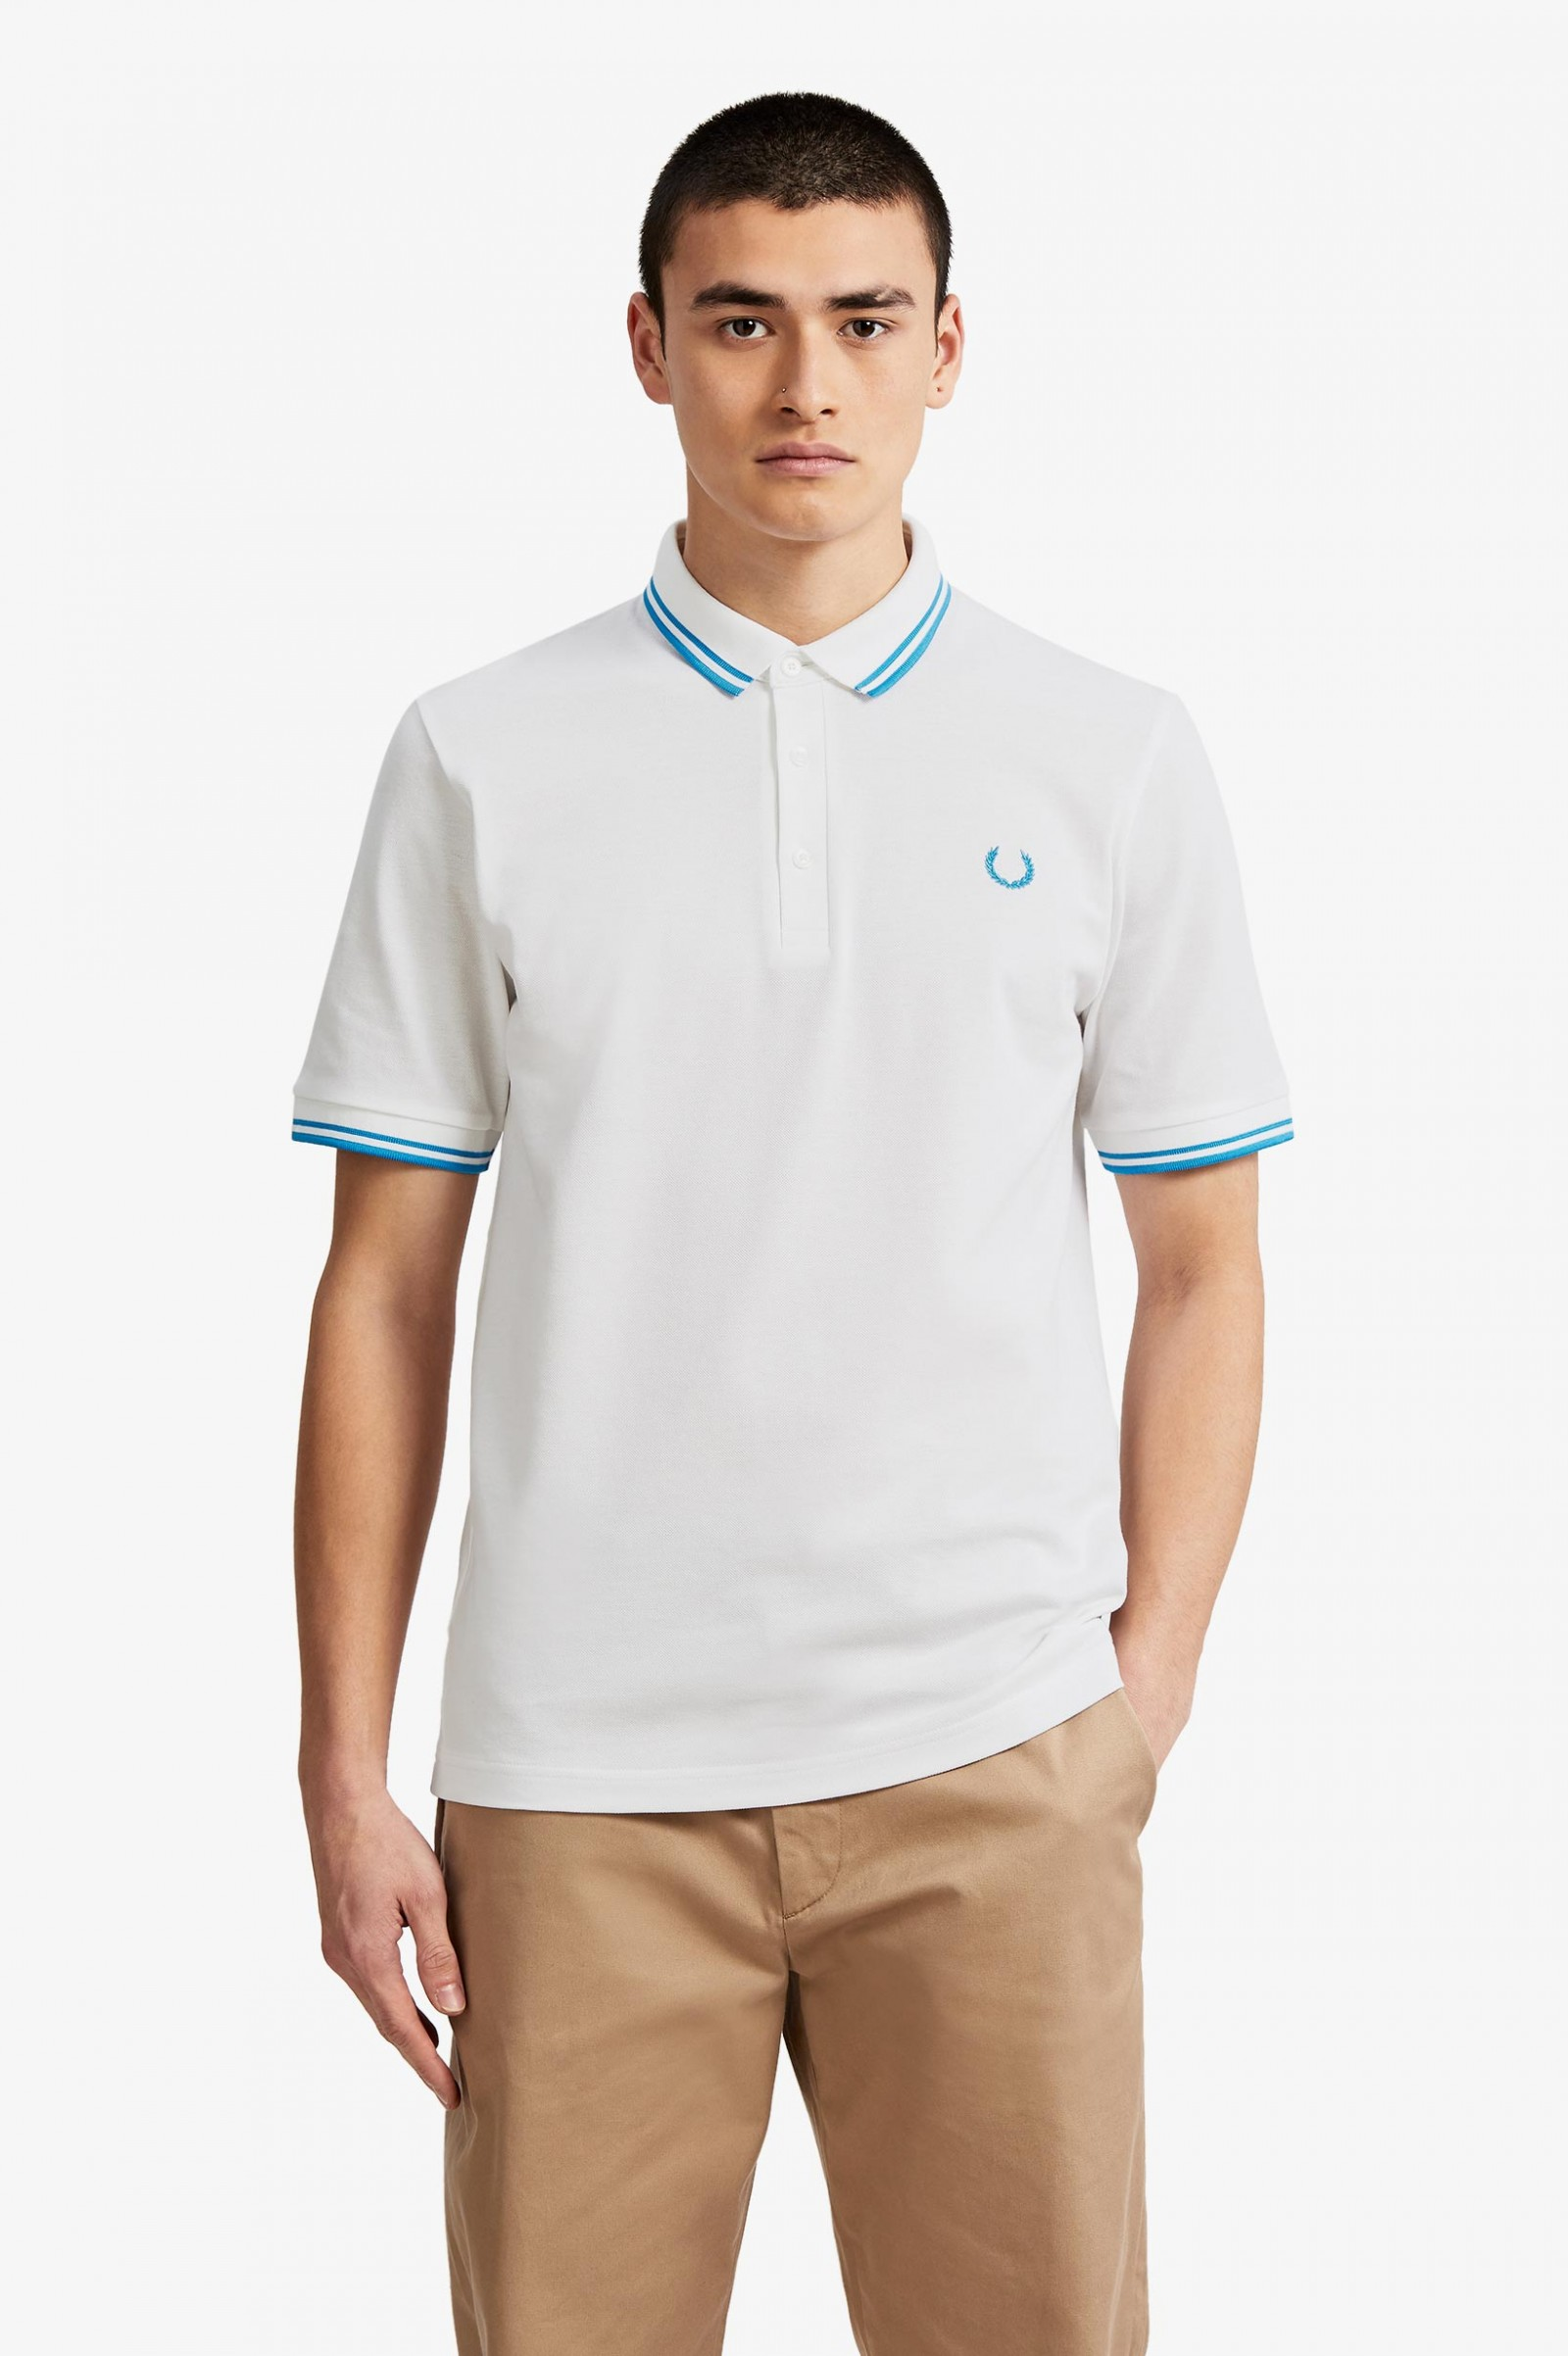 Men's Clothing Inventive Fred Perry Polo Shirt Shirts & Tops